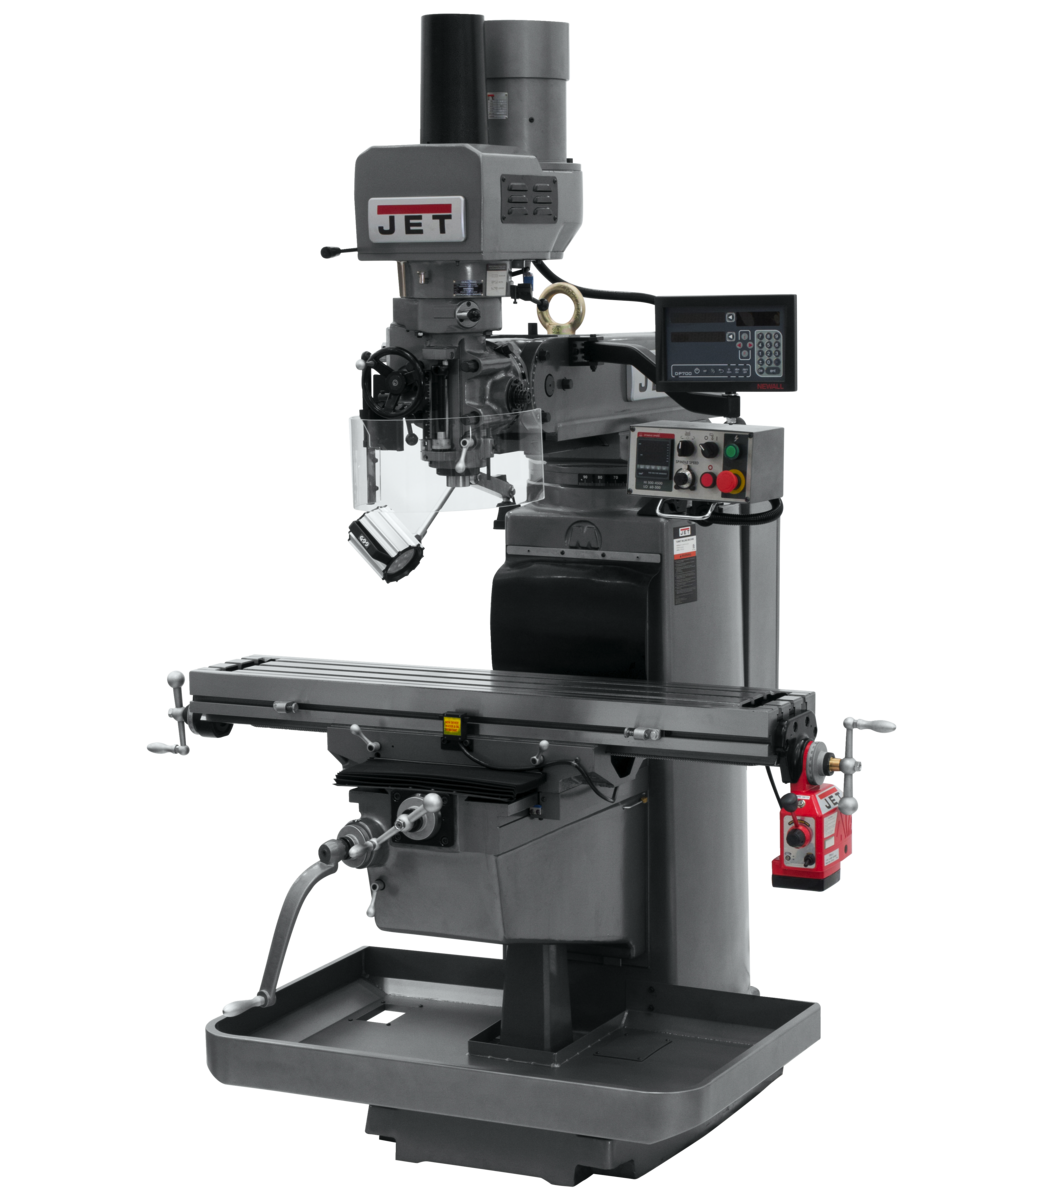 JTM-1050EVS2/230 Mill With 3-Axis Newall DP700 DRO (Quill) With X-Axis Powerfeed and Air Powered Draw Bar